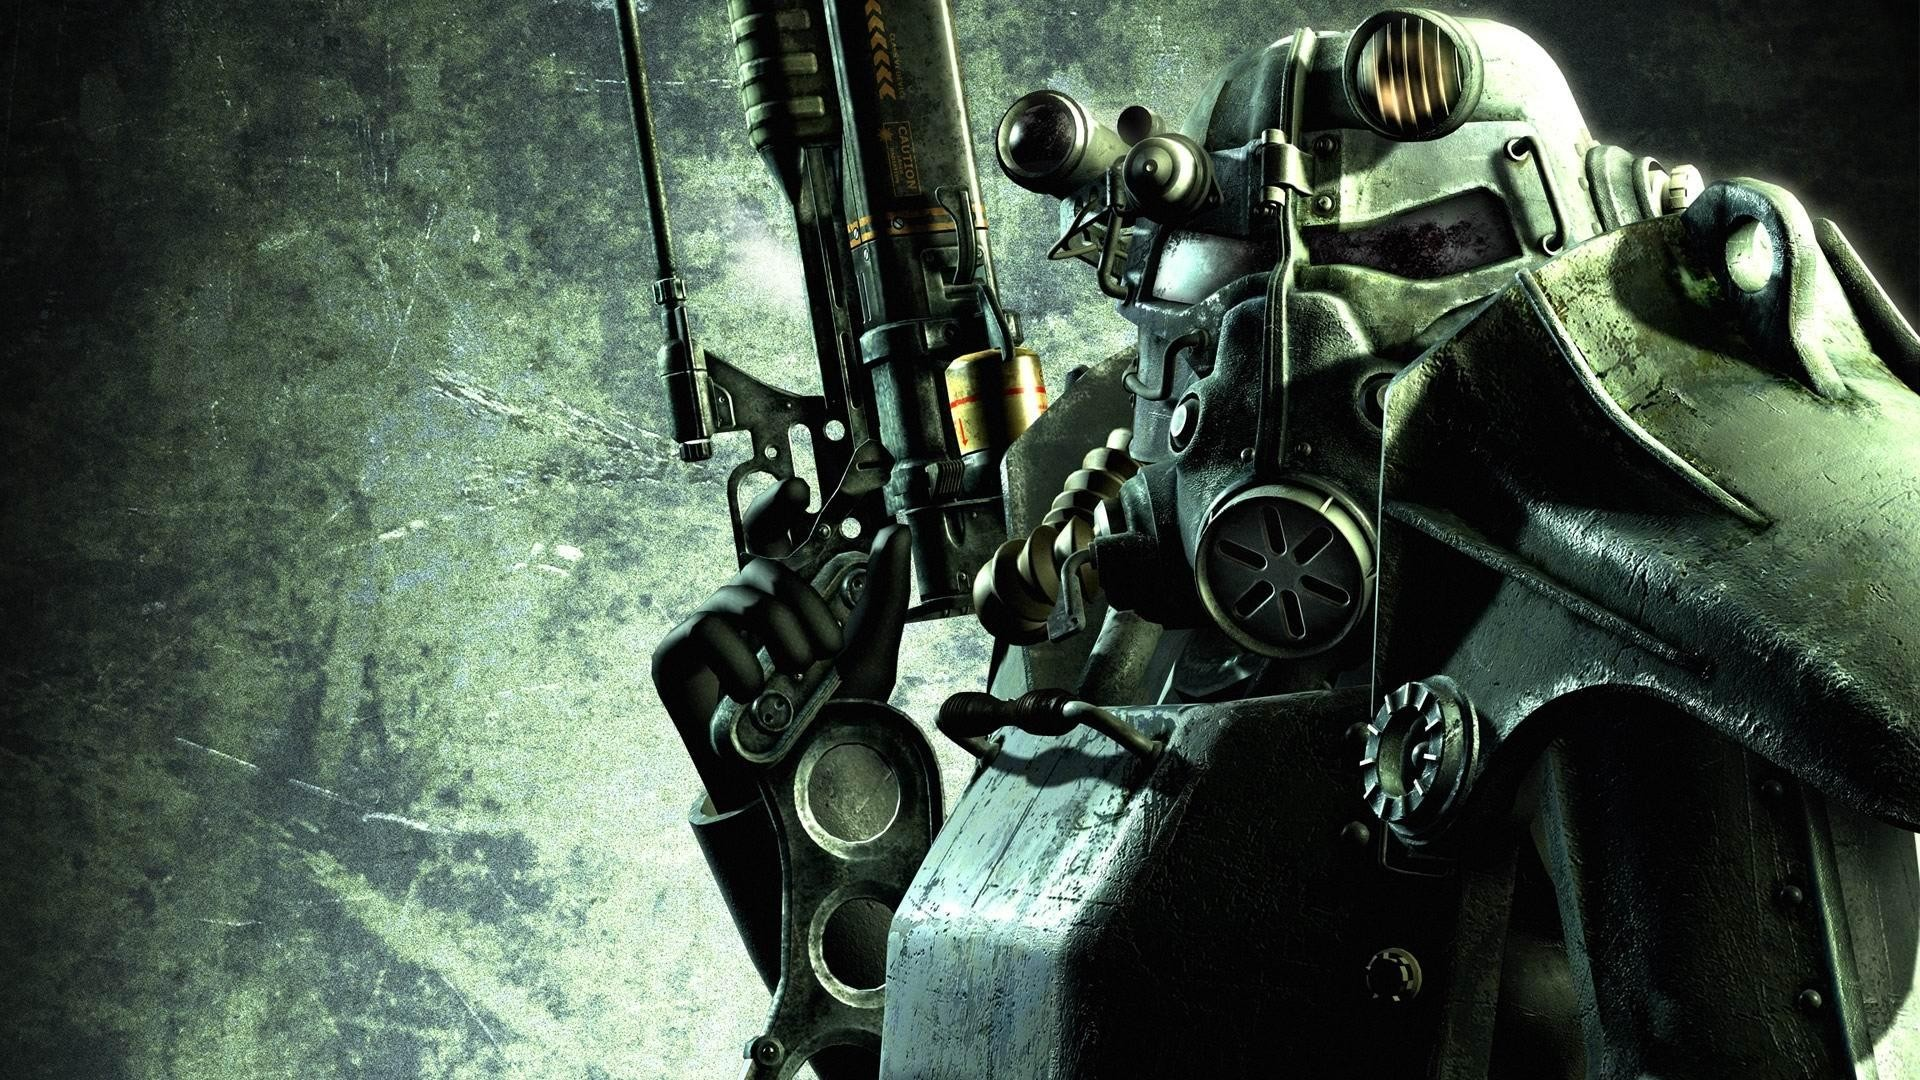 Res: 1920x1080, Get the latest fallout, gun, soldier news, pictures and videos and learn  all about fallout, gun, soldier from wallpapers4u.org, your wallpaper news  source.